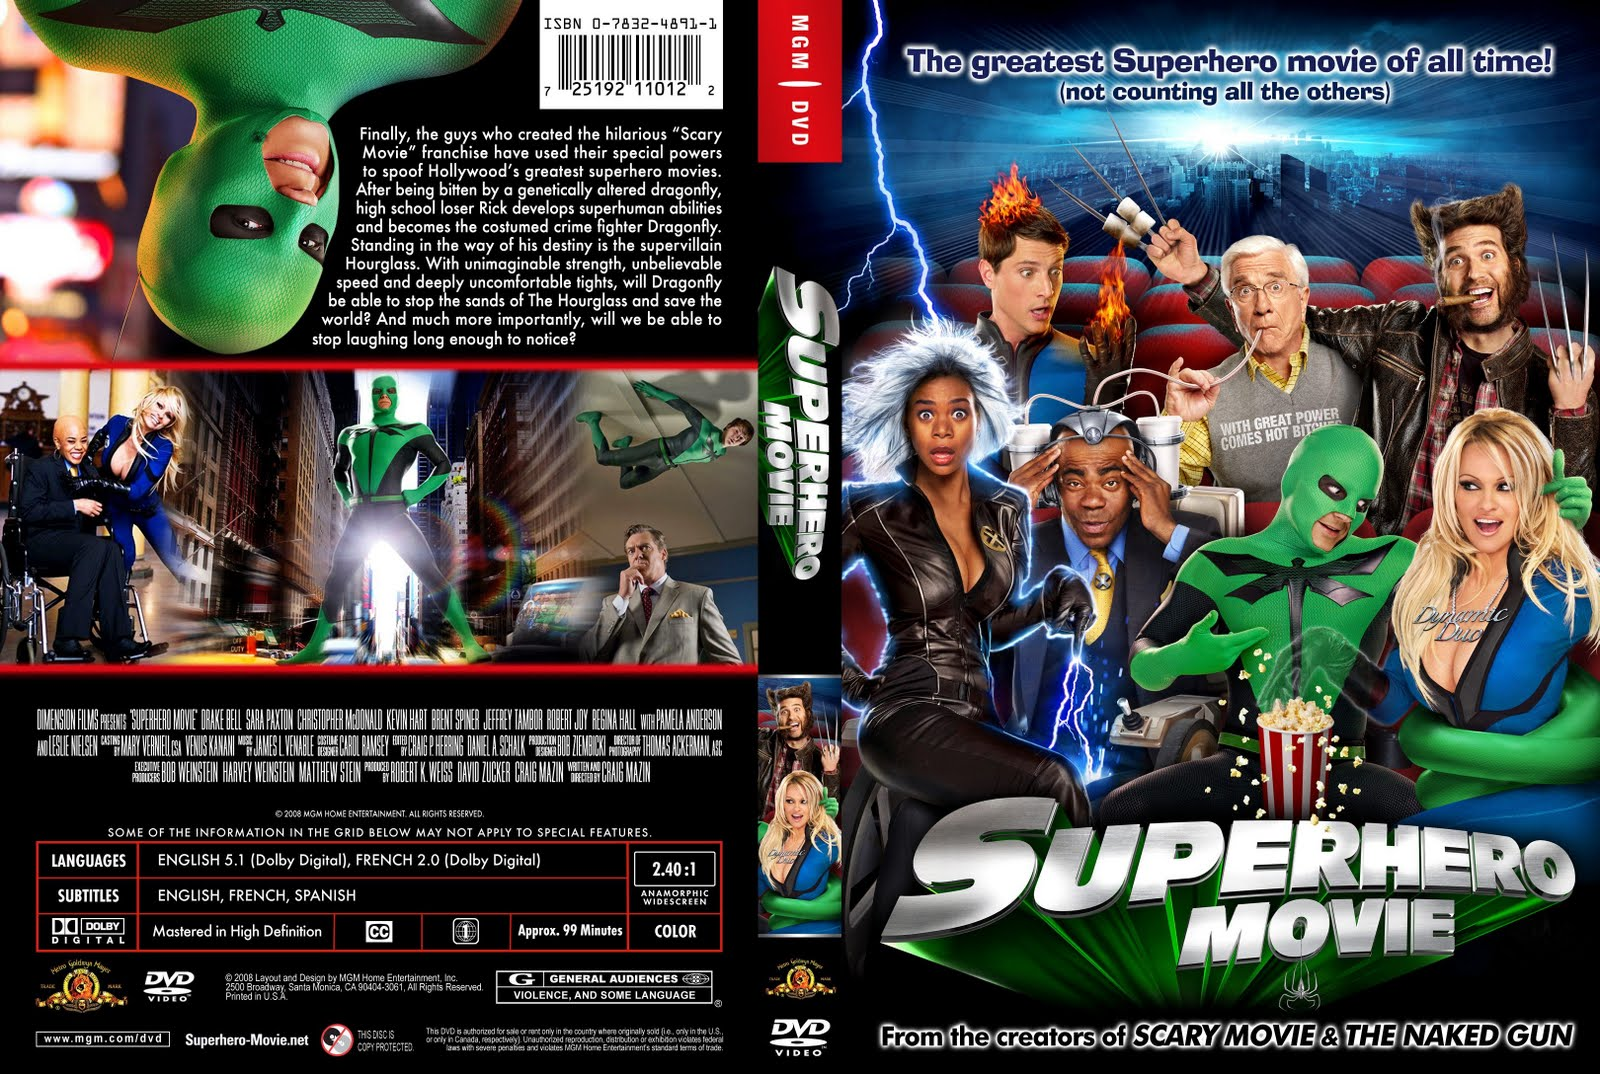 film, ryemovies, ganool movies, 2014, download free, comedy, parody, gratis, subtitle, terjemah indonesia, Superhero Movie 2008